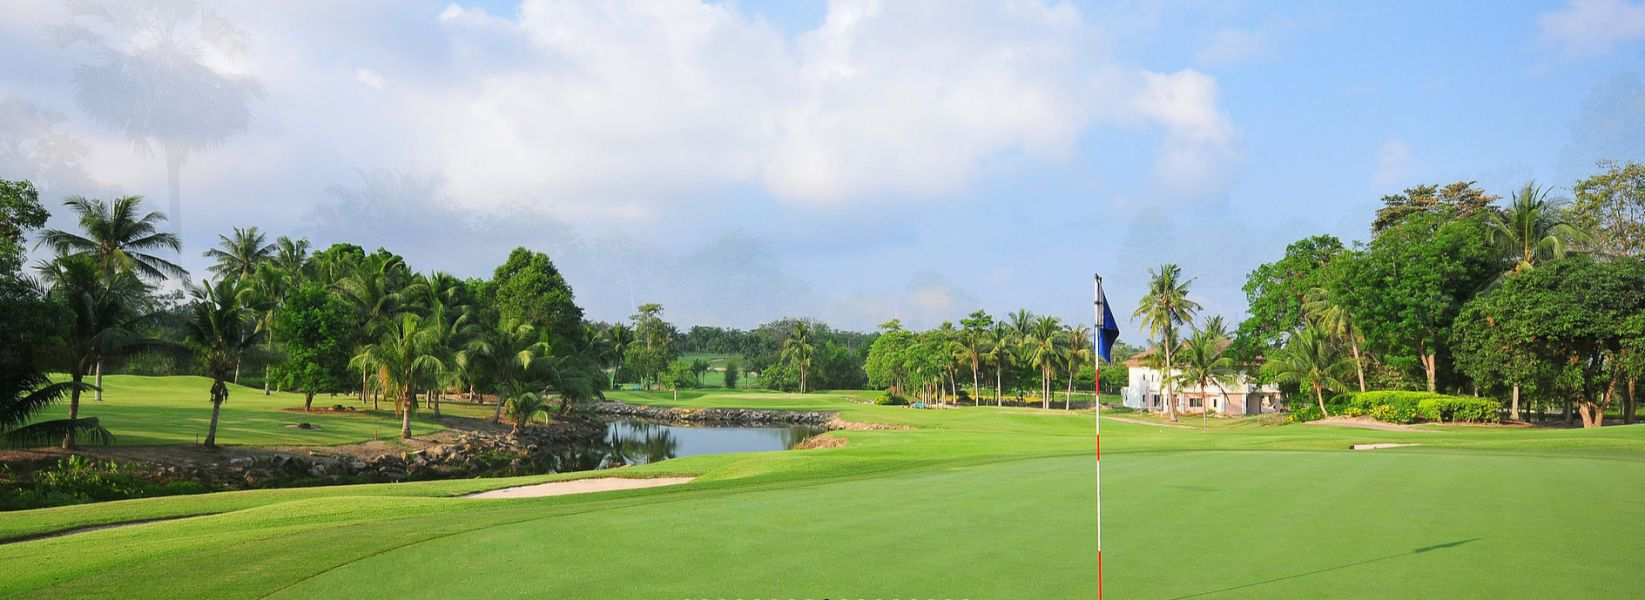 rayong-green-valley-country-club-32